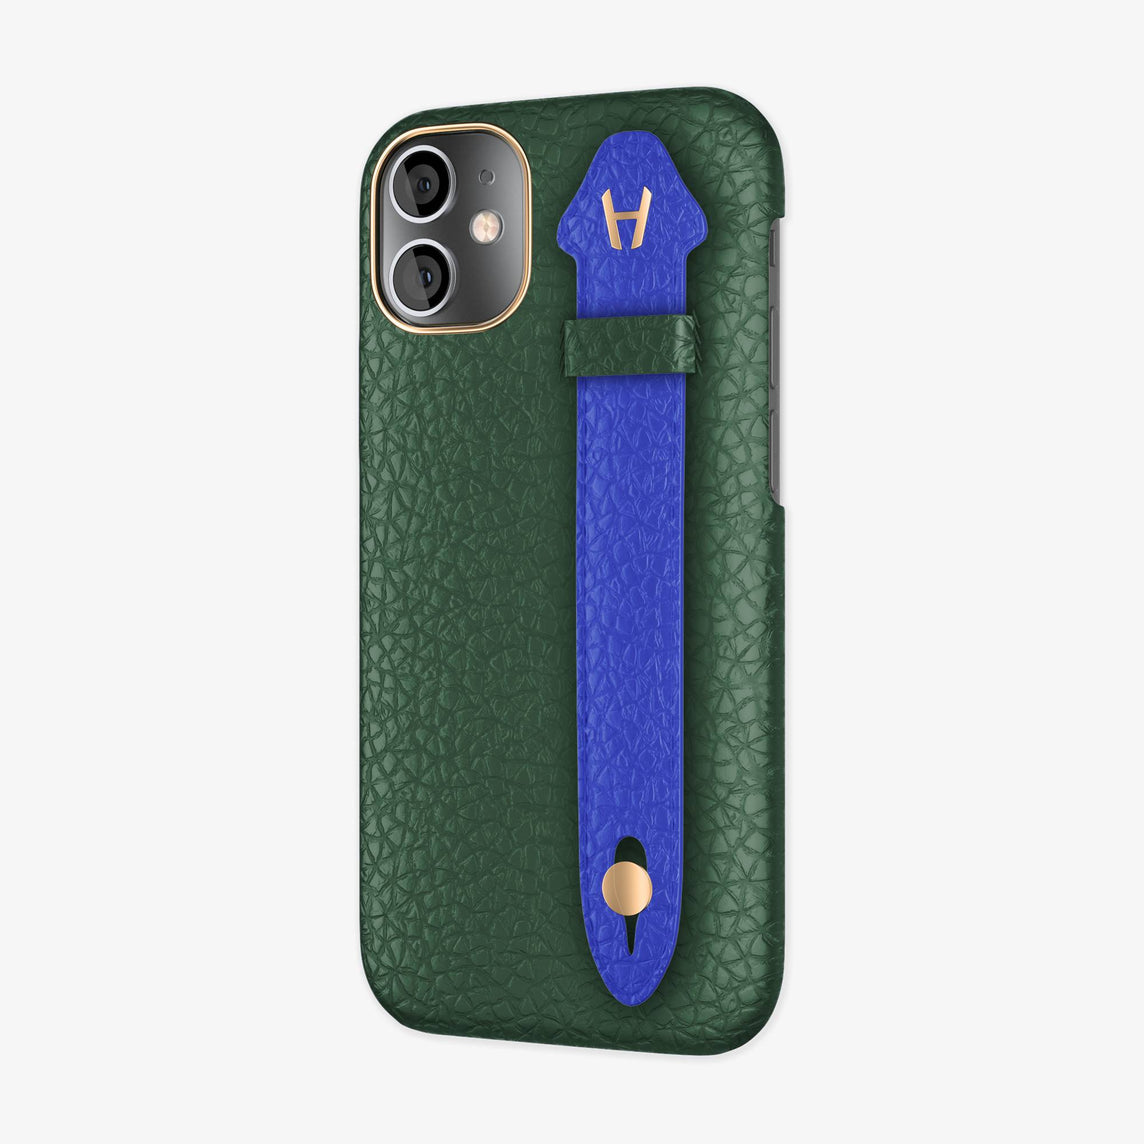 Calfskin Side Finger Case iPhone 12 Mini | Green/Peony Blue - Rose Gold